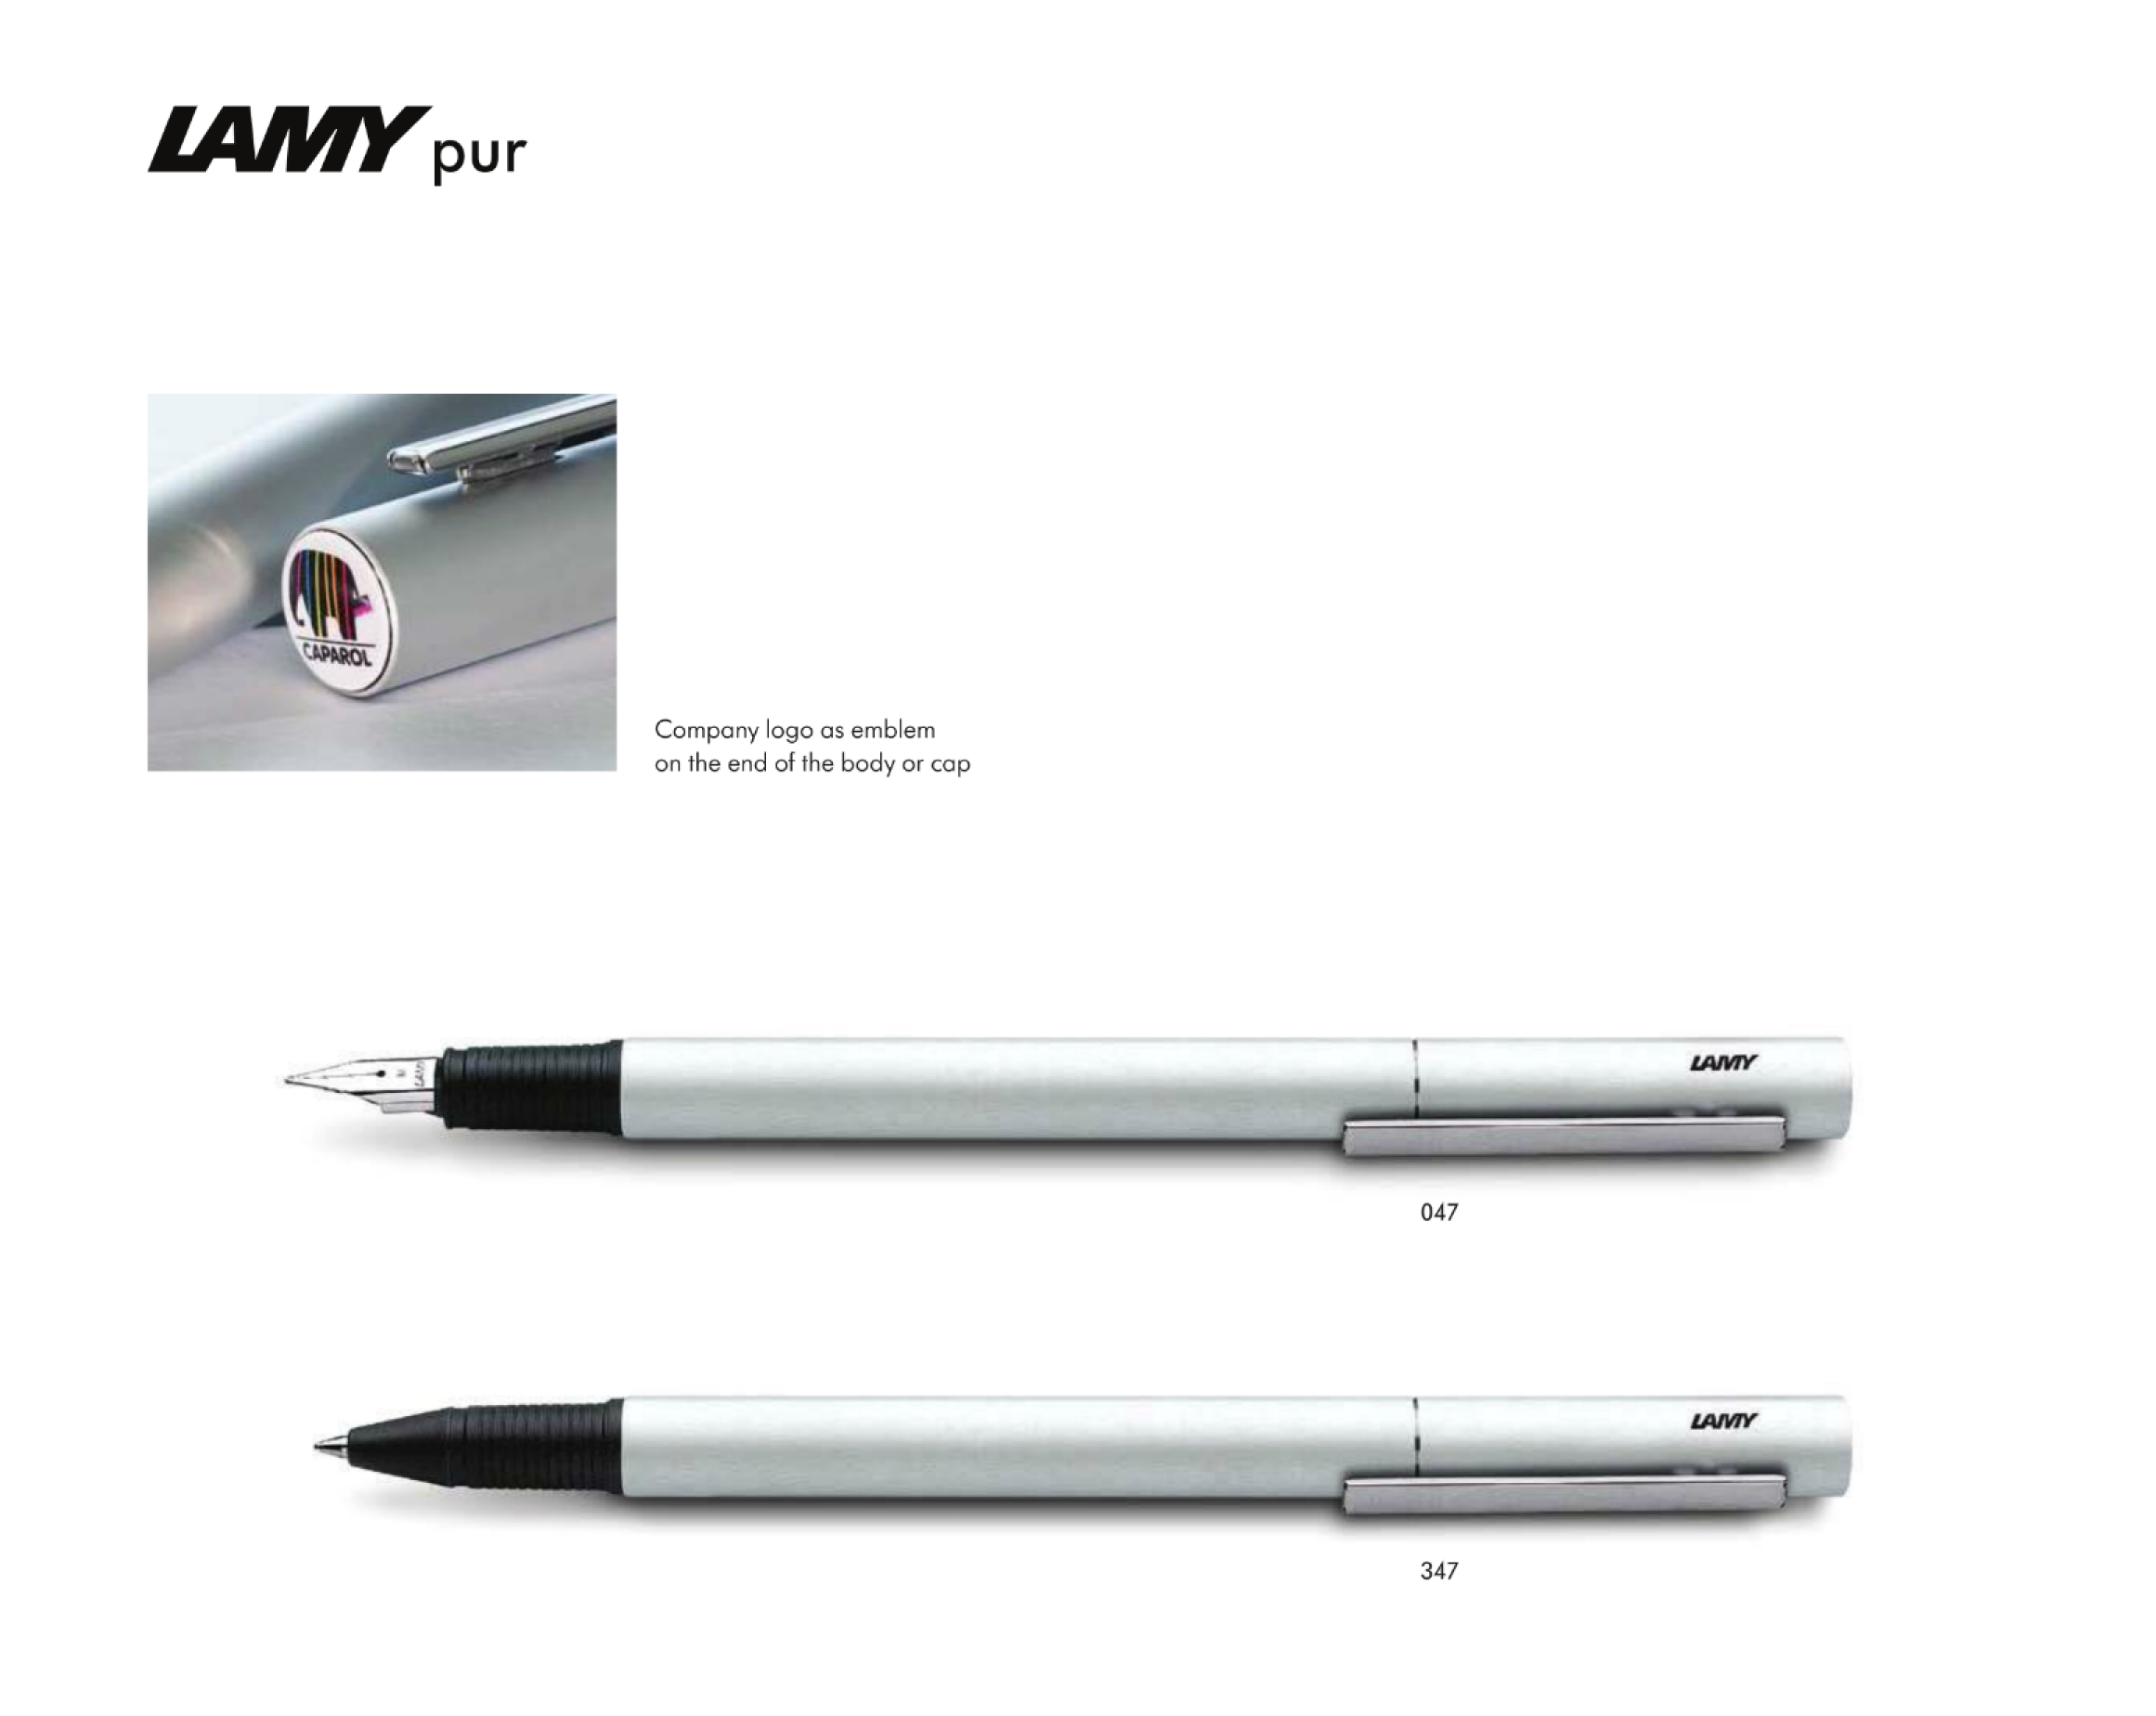 Large image for Lamy Pur with End Cap Branding